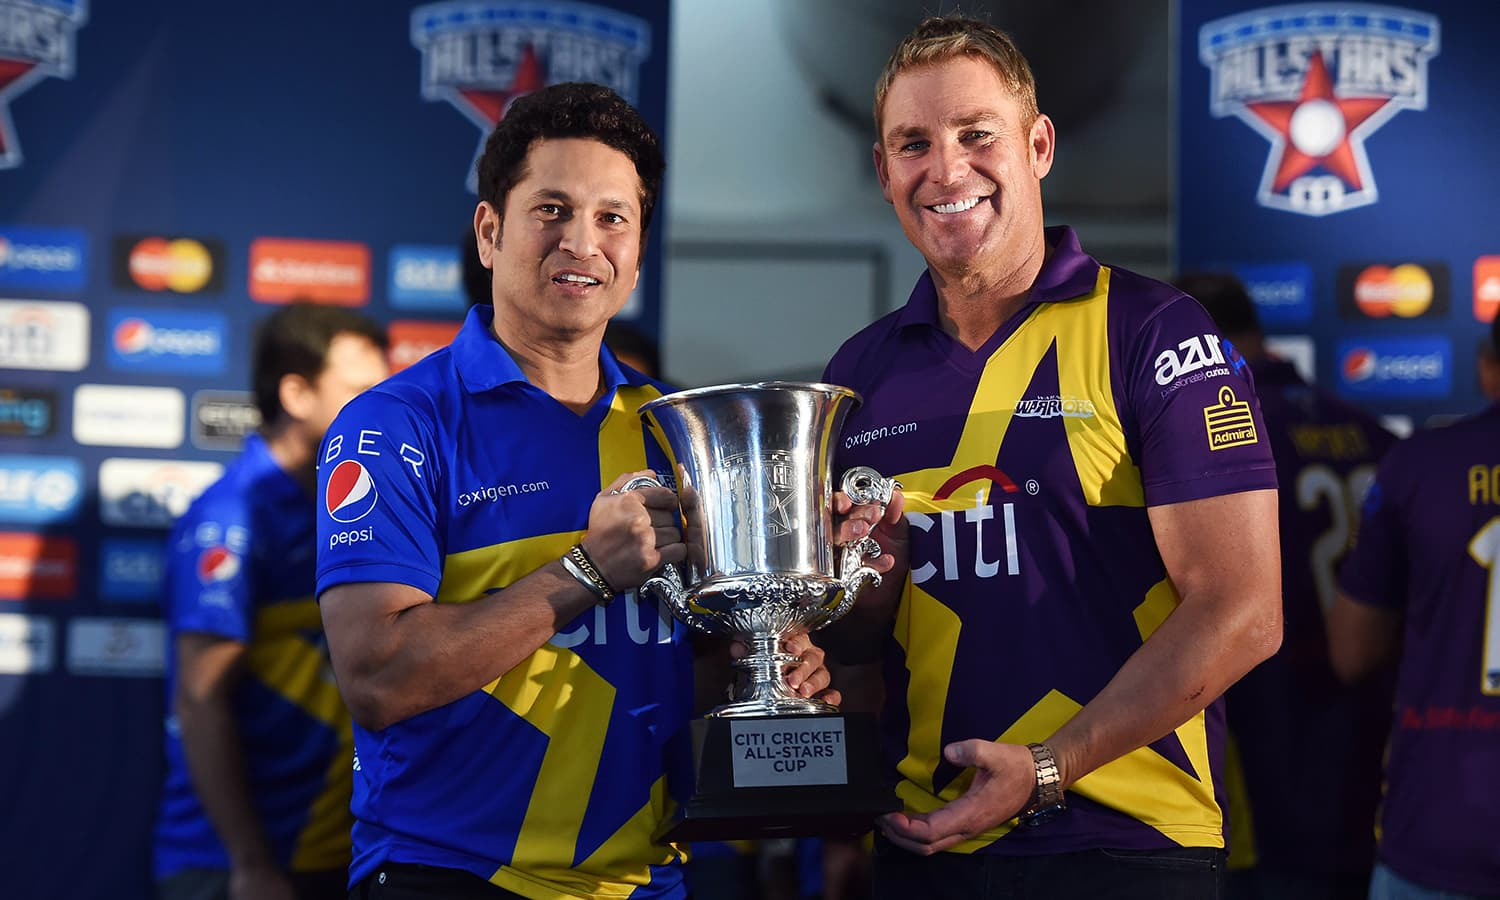 """Retired Indian cricketer Sachin Tendulkar (L) and Australian Shane Warne pose with the trophy during a press conference in New York on November 5, 2015. Tendulkar and Warne will lead a lineup of renowned cricket players from around the world in the inaugural """"Cricket All-Stars,"""" a three-game series to be played in Major League Baseball stadiums in New York , Houston and Los Angeles, to promote cricket the US. AFP PHOTO/JEWEL SAMAD"""